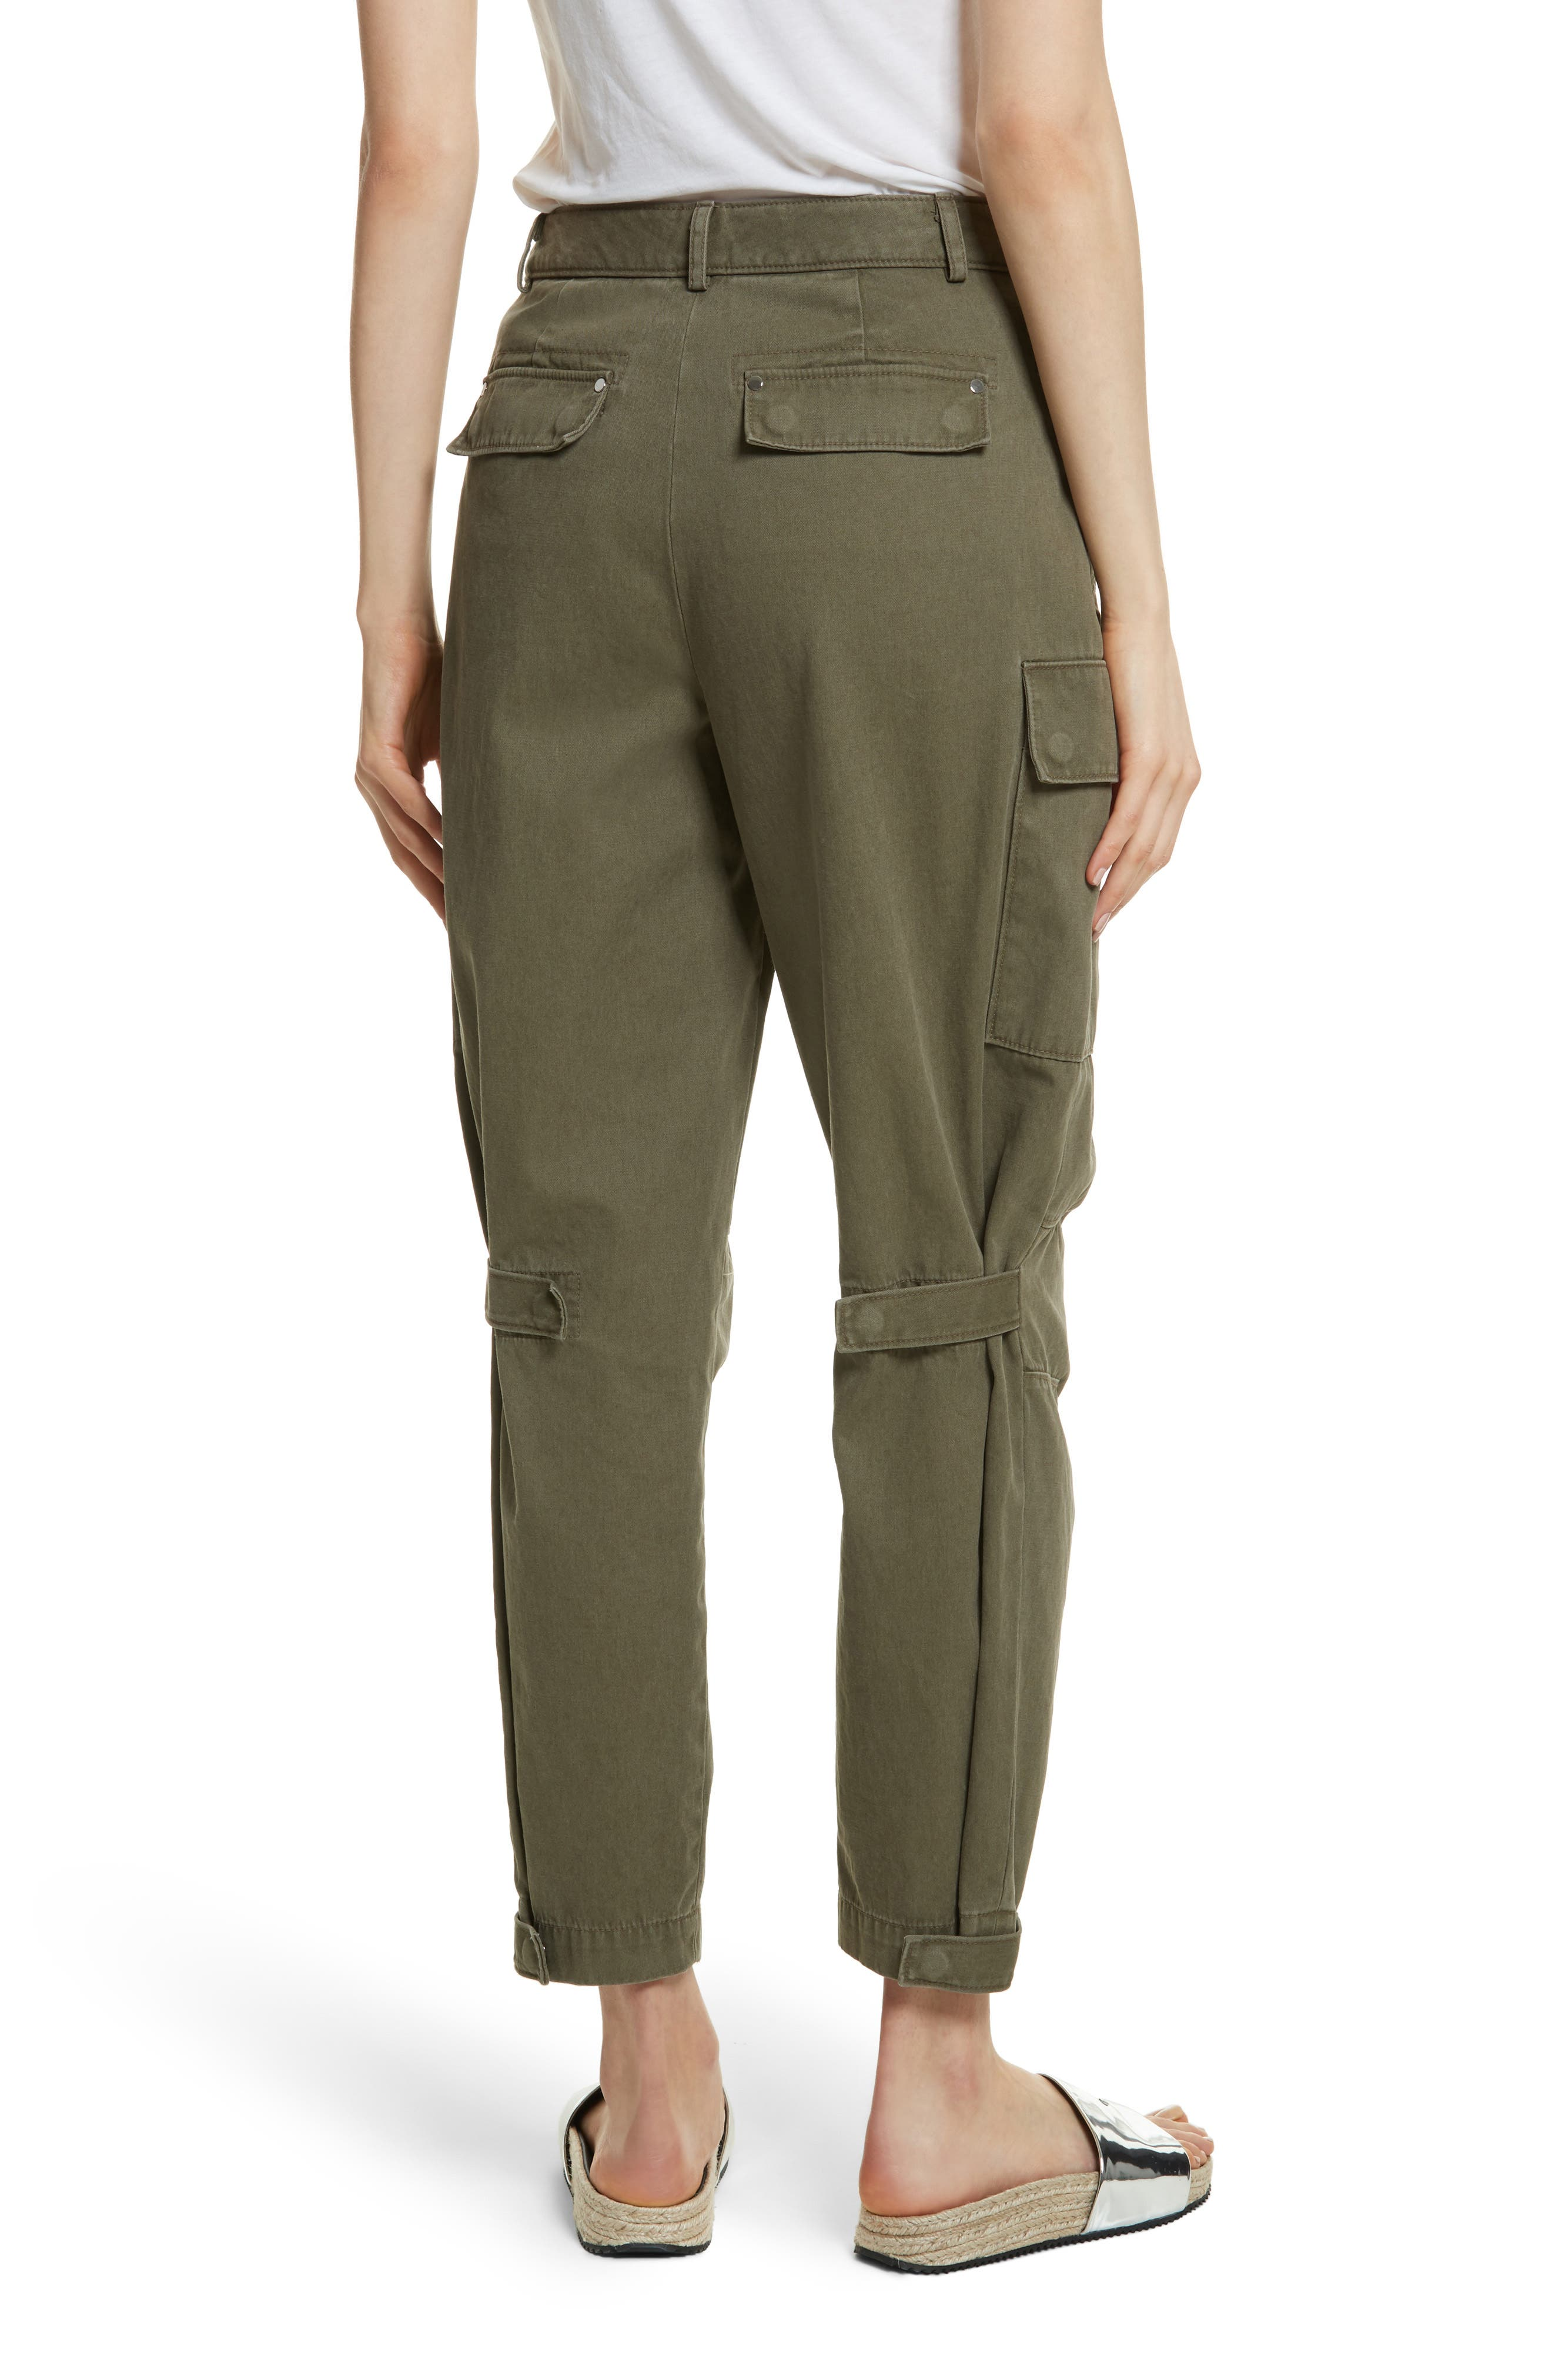 Twill Cargo Pants,                             Alternate thumbnail 2, color,                             Cargo